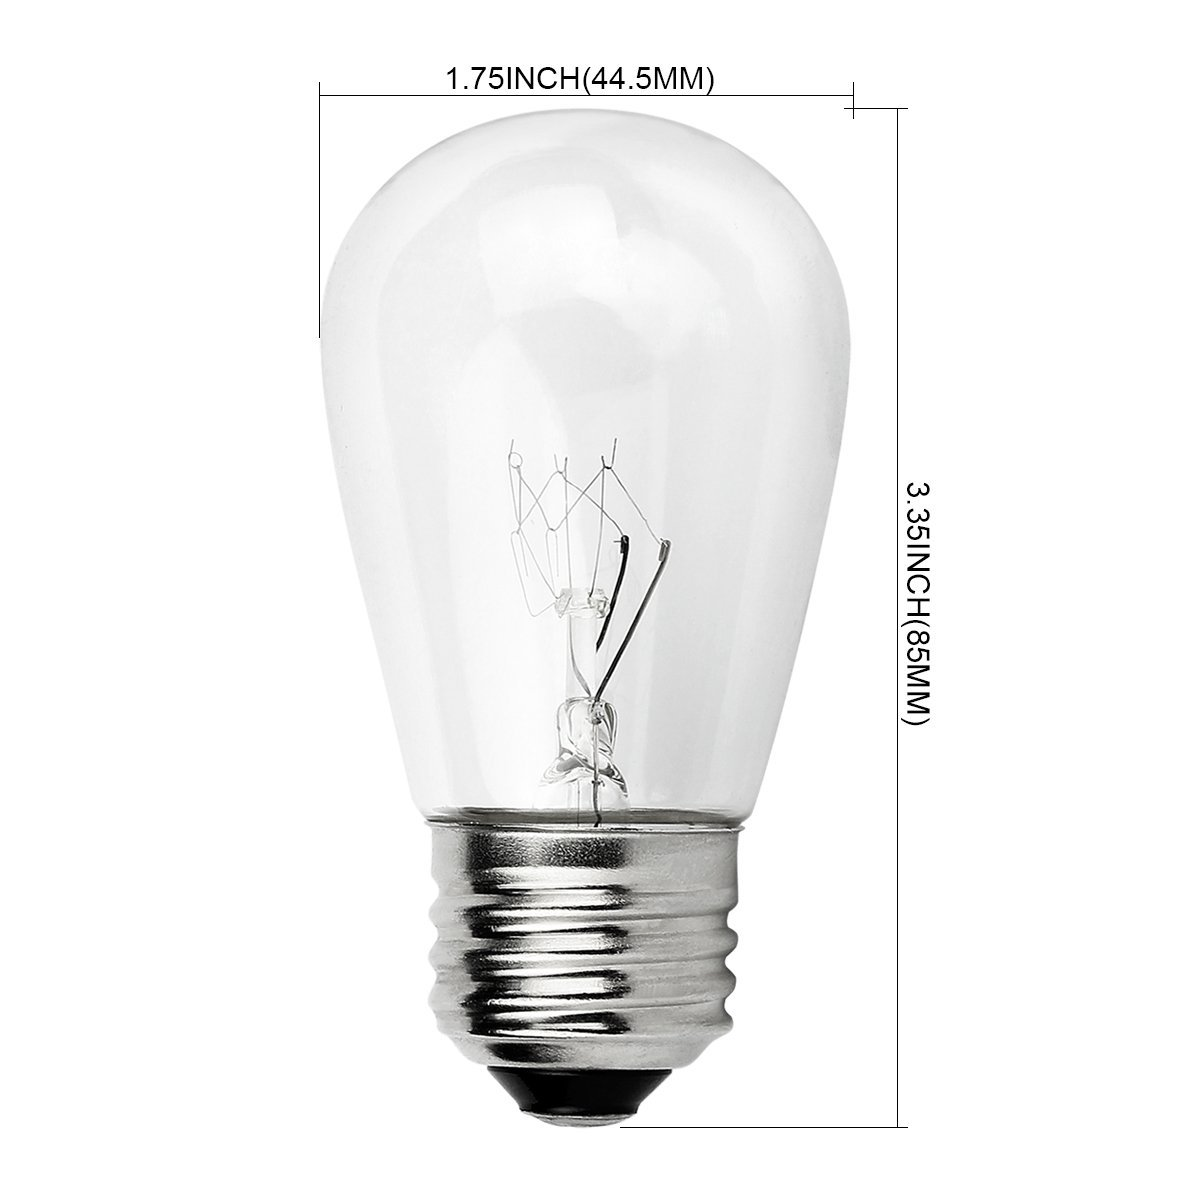 Porch Light Bulb Replacement: Newhouse Lighting Outdoor S14 Incandescent Replacement